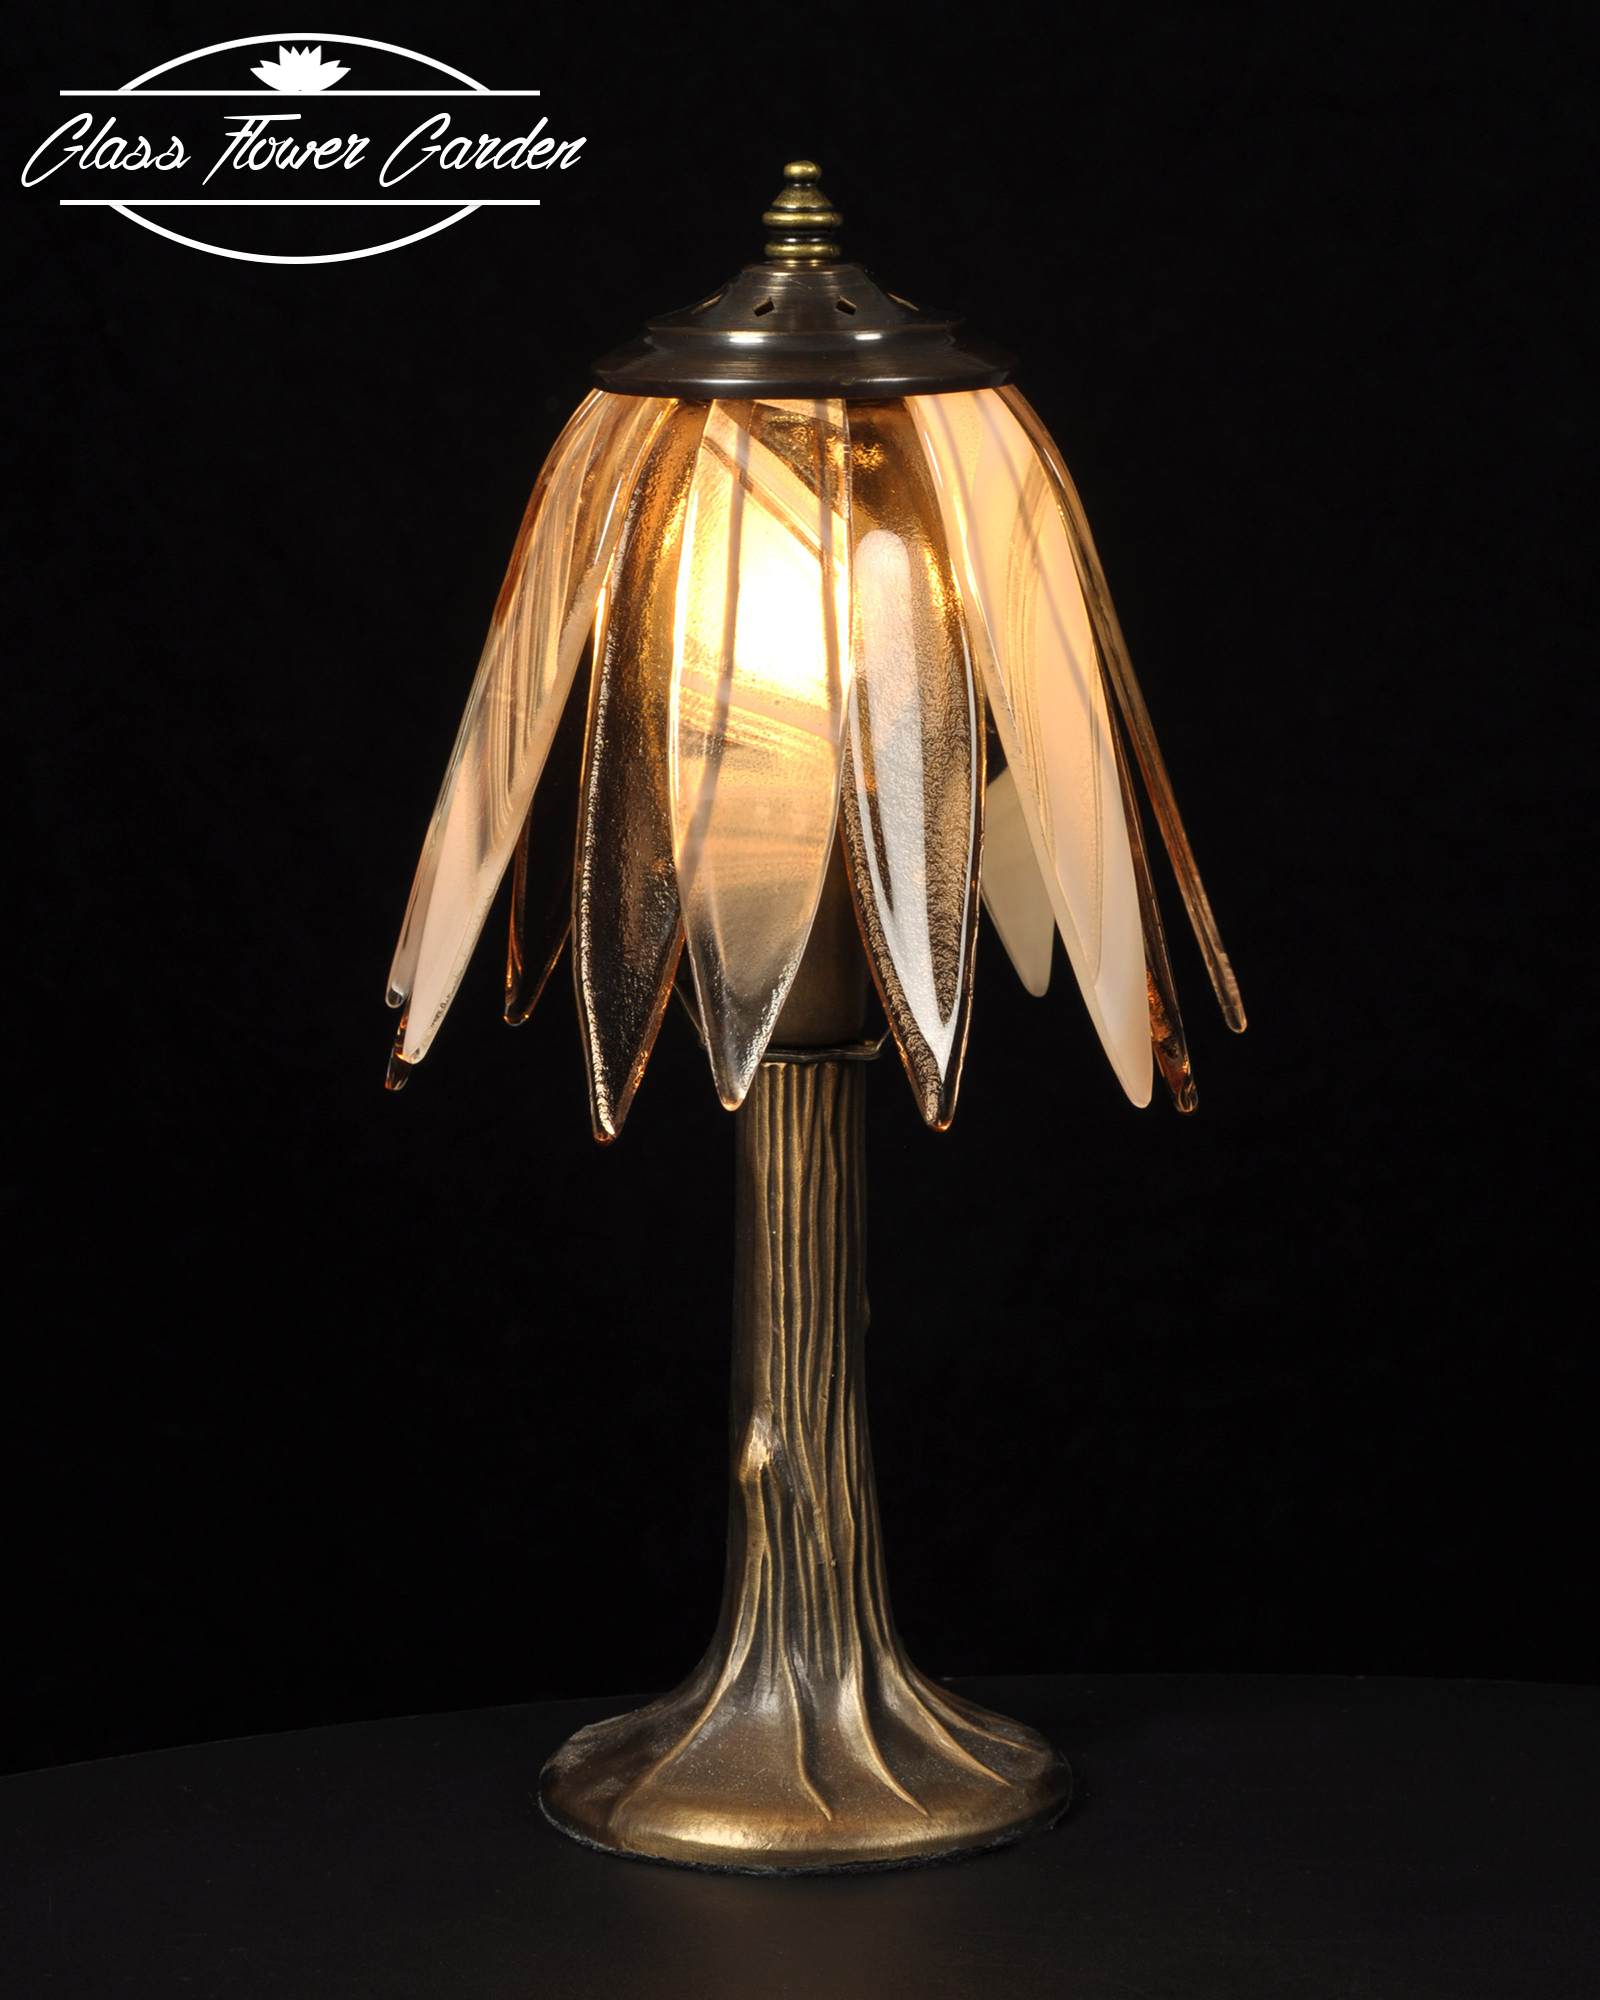 Rose beige glass shaded lamp glass flower garden online store rose beige glass shaded lamp mozeypictures Gallery